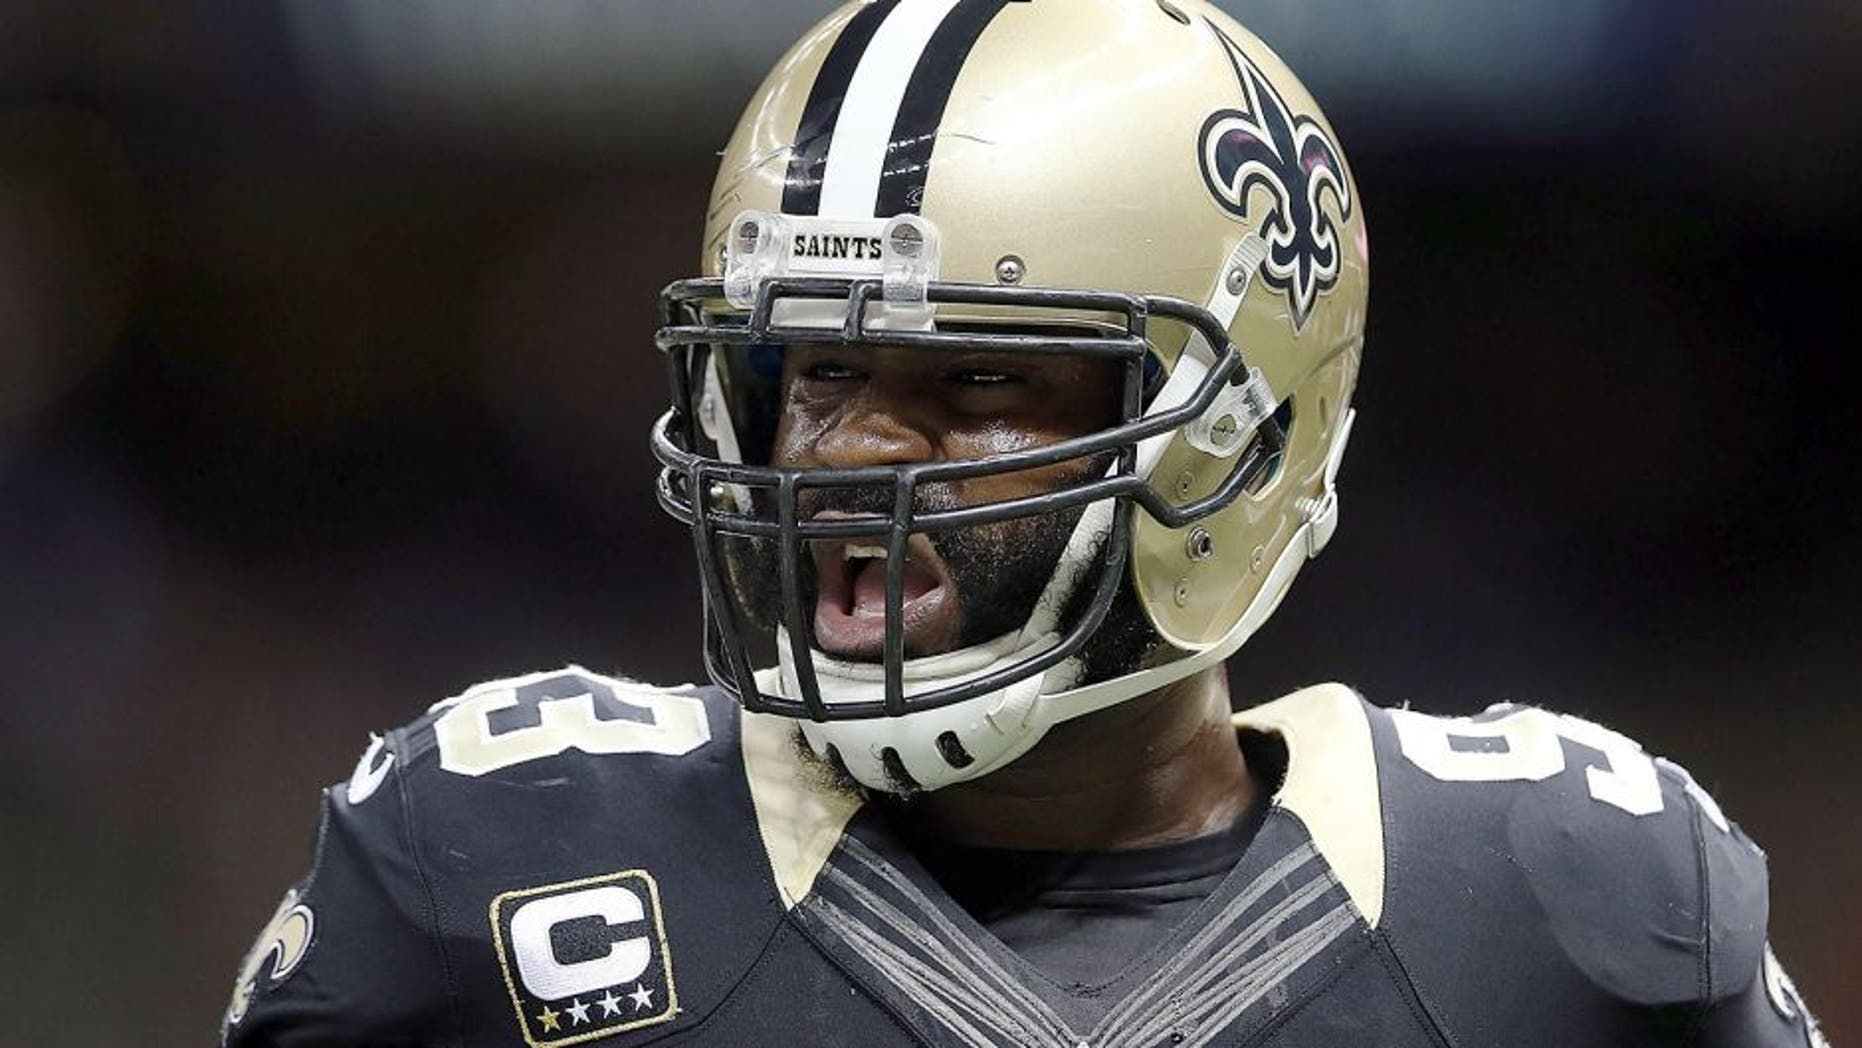 NEW ORLEANS, LA - NOVEMBER 24: Junior Galette #93 of the New Orleans Saints participates in warmups prior to a game against the Baltimore Ravens at the Mercedes-Benz Superdome on November 24, 2014 in New Orleans, Louisiana. (Photo by Chris Graythen/Getty Images)